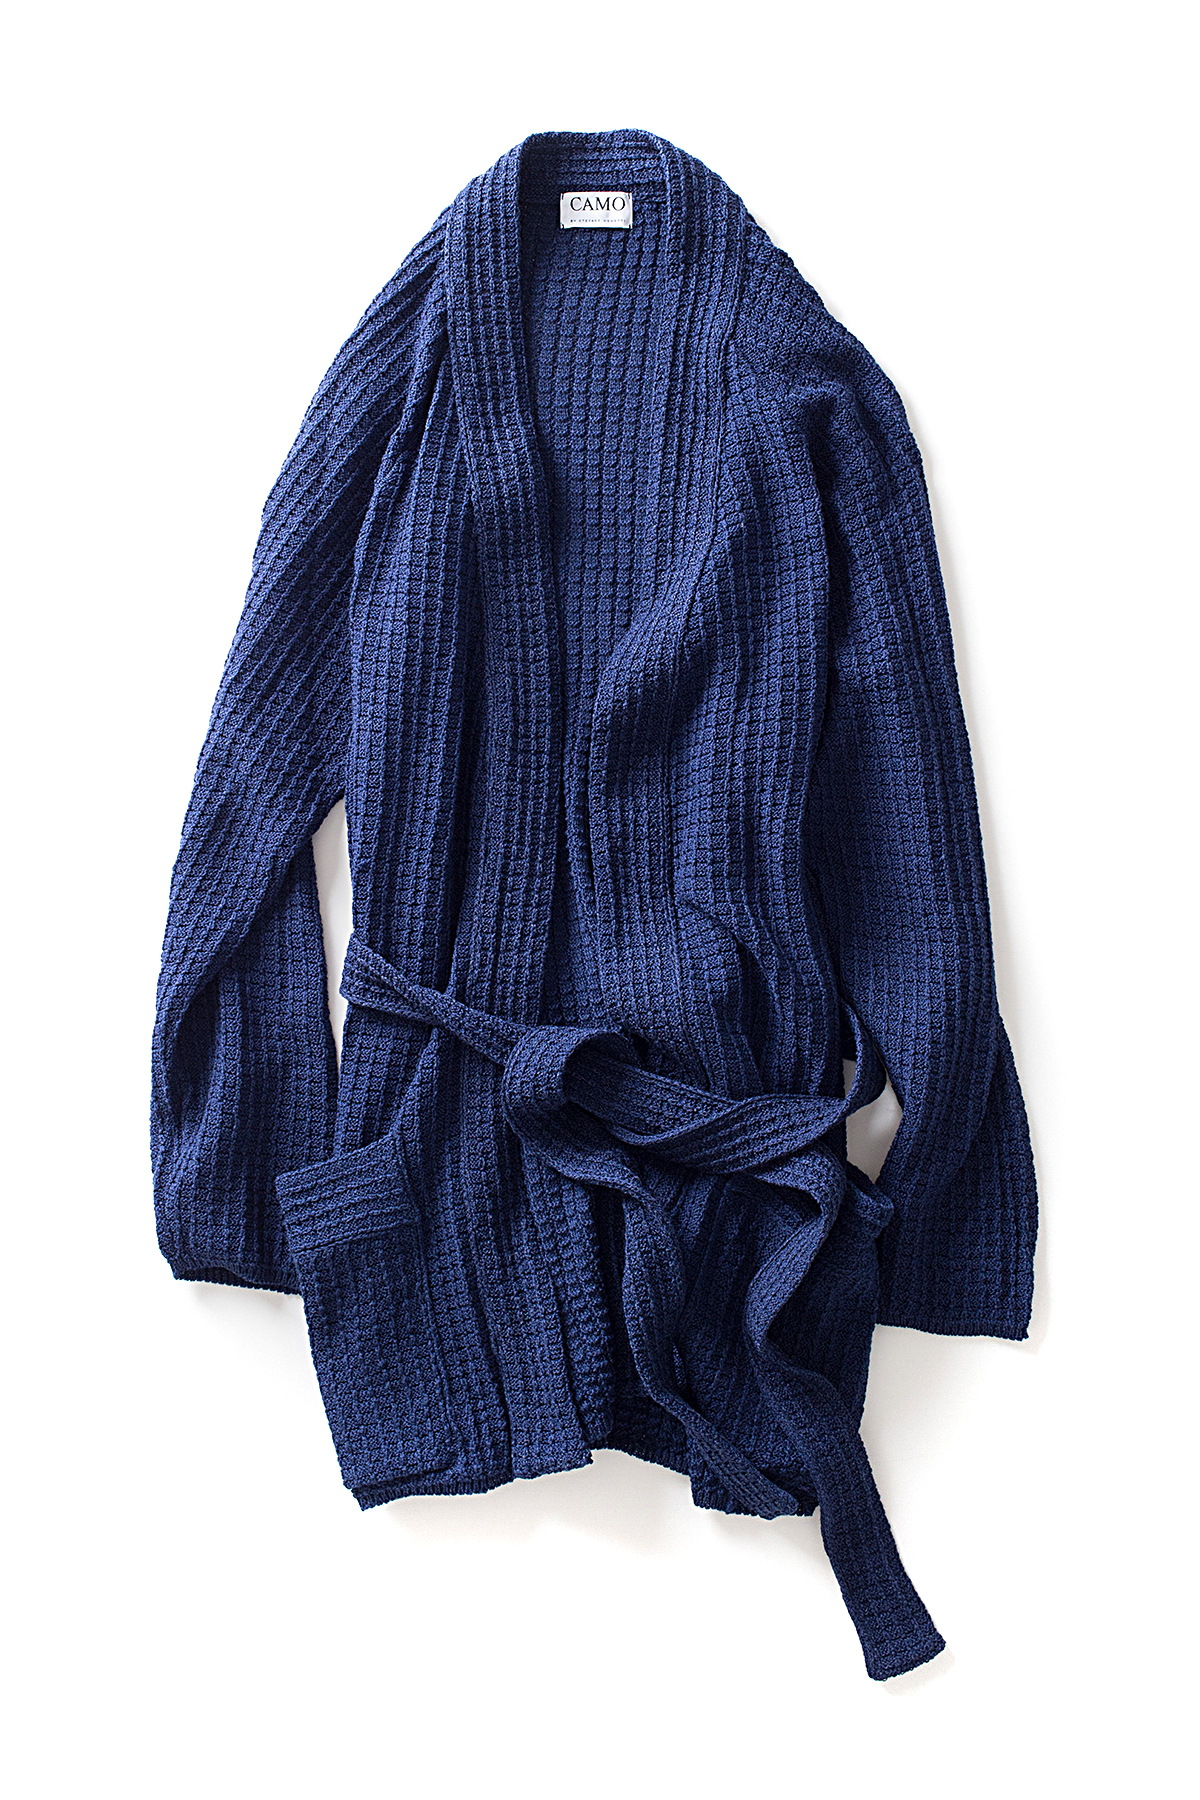 CAMO : Knit Robe Cardigan (Blue)